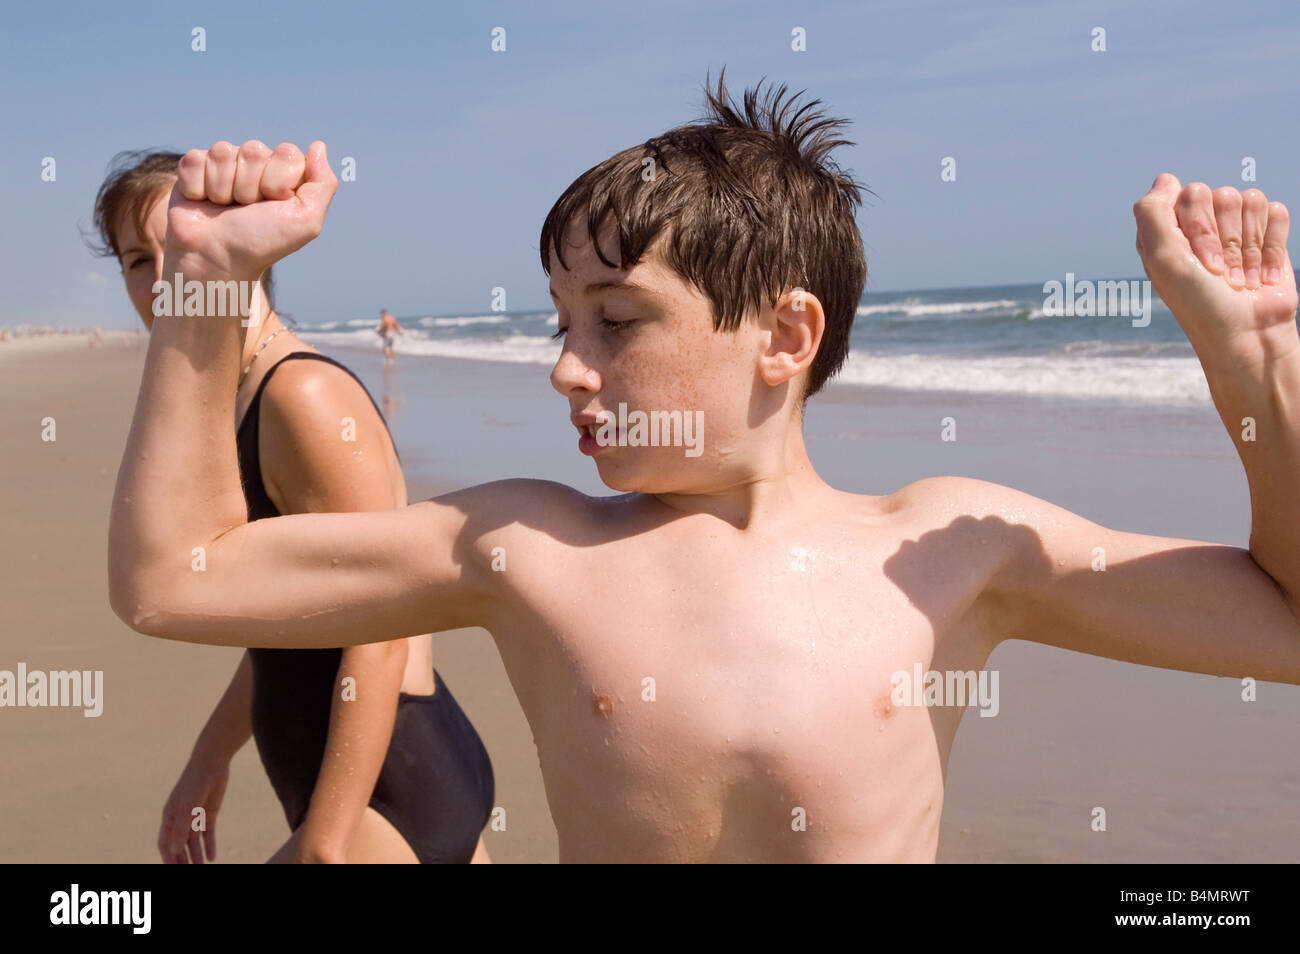 A Boy Flexes His Muscles On The Beach As A Woman Walks By And Looks